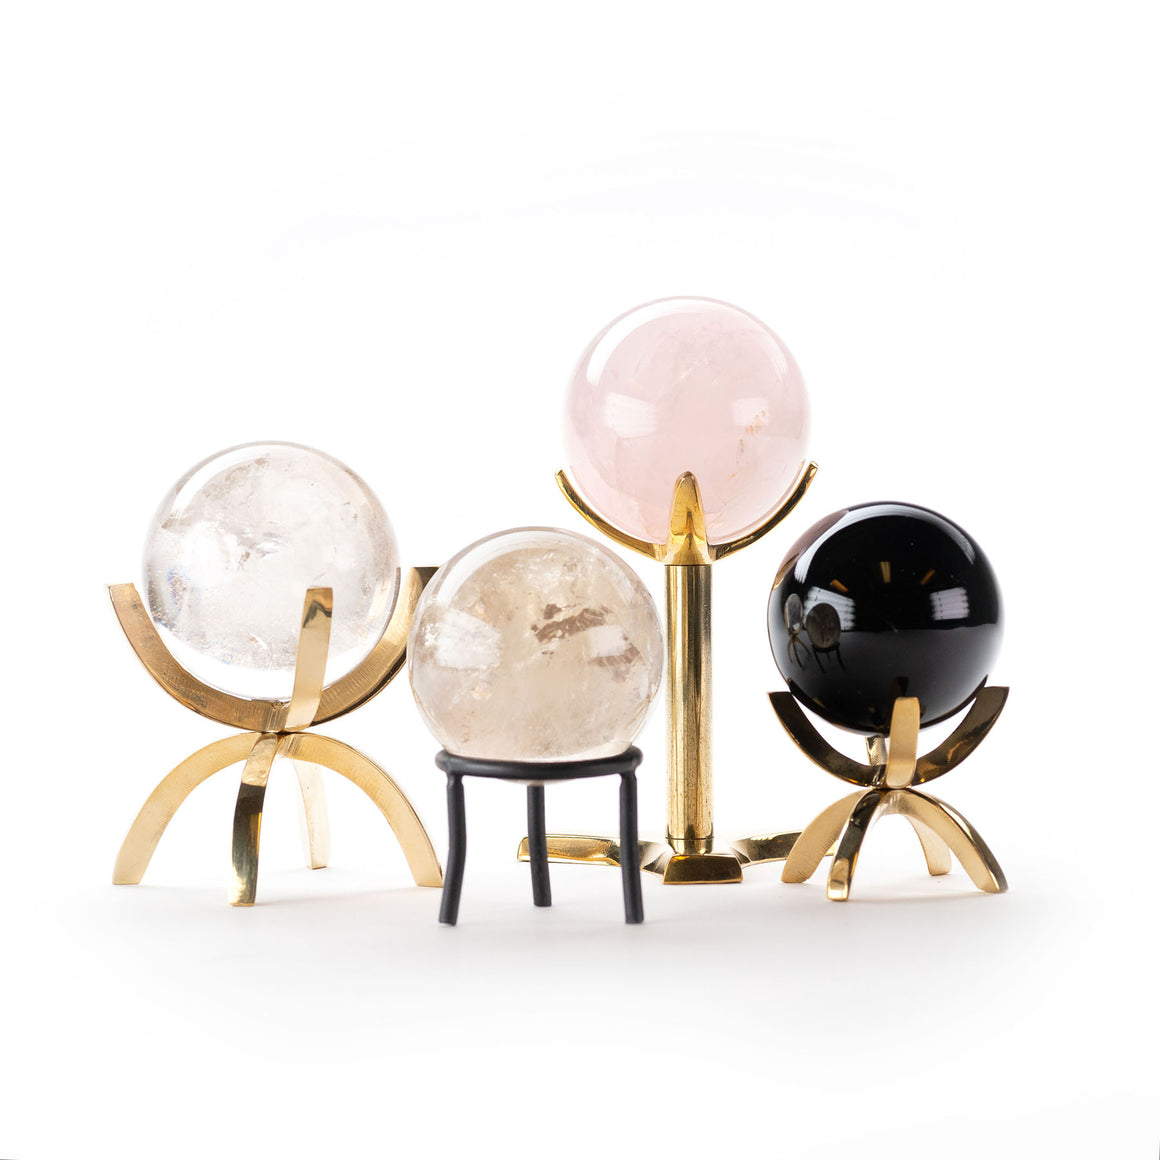 Crystal Ball Stands